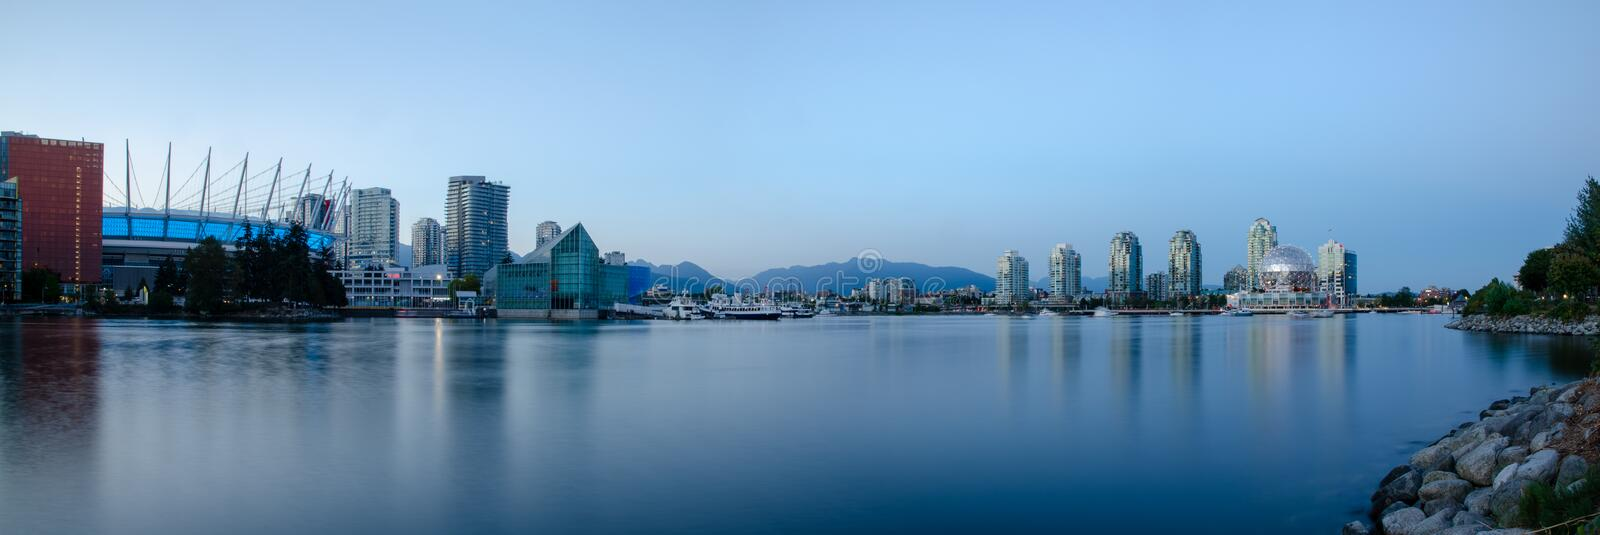 Panorama des Vancouvers False Creek lizenzfreie stockfotos